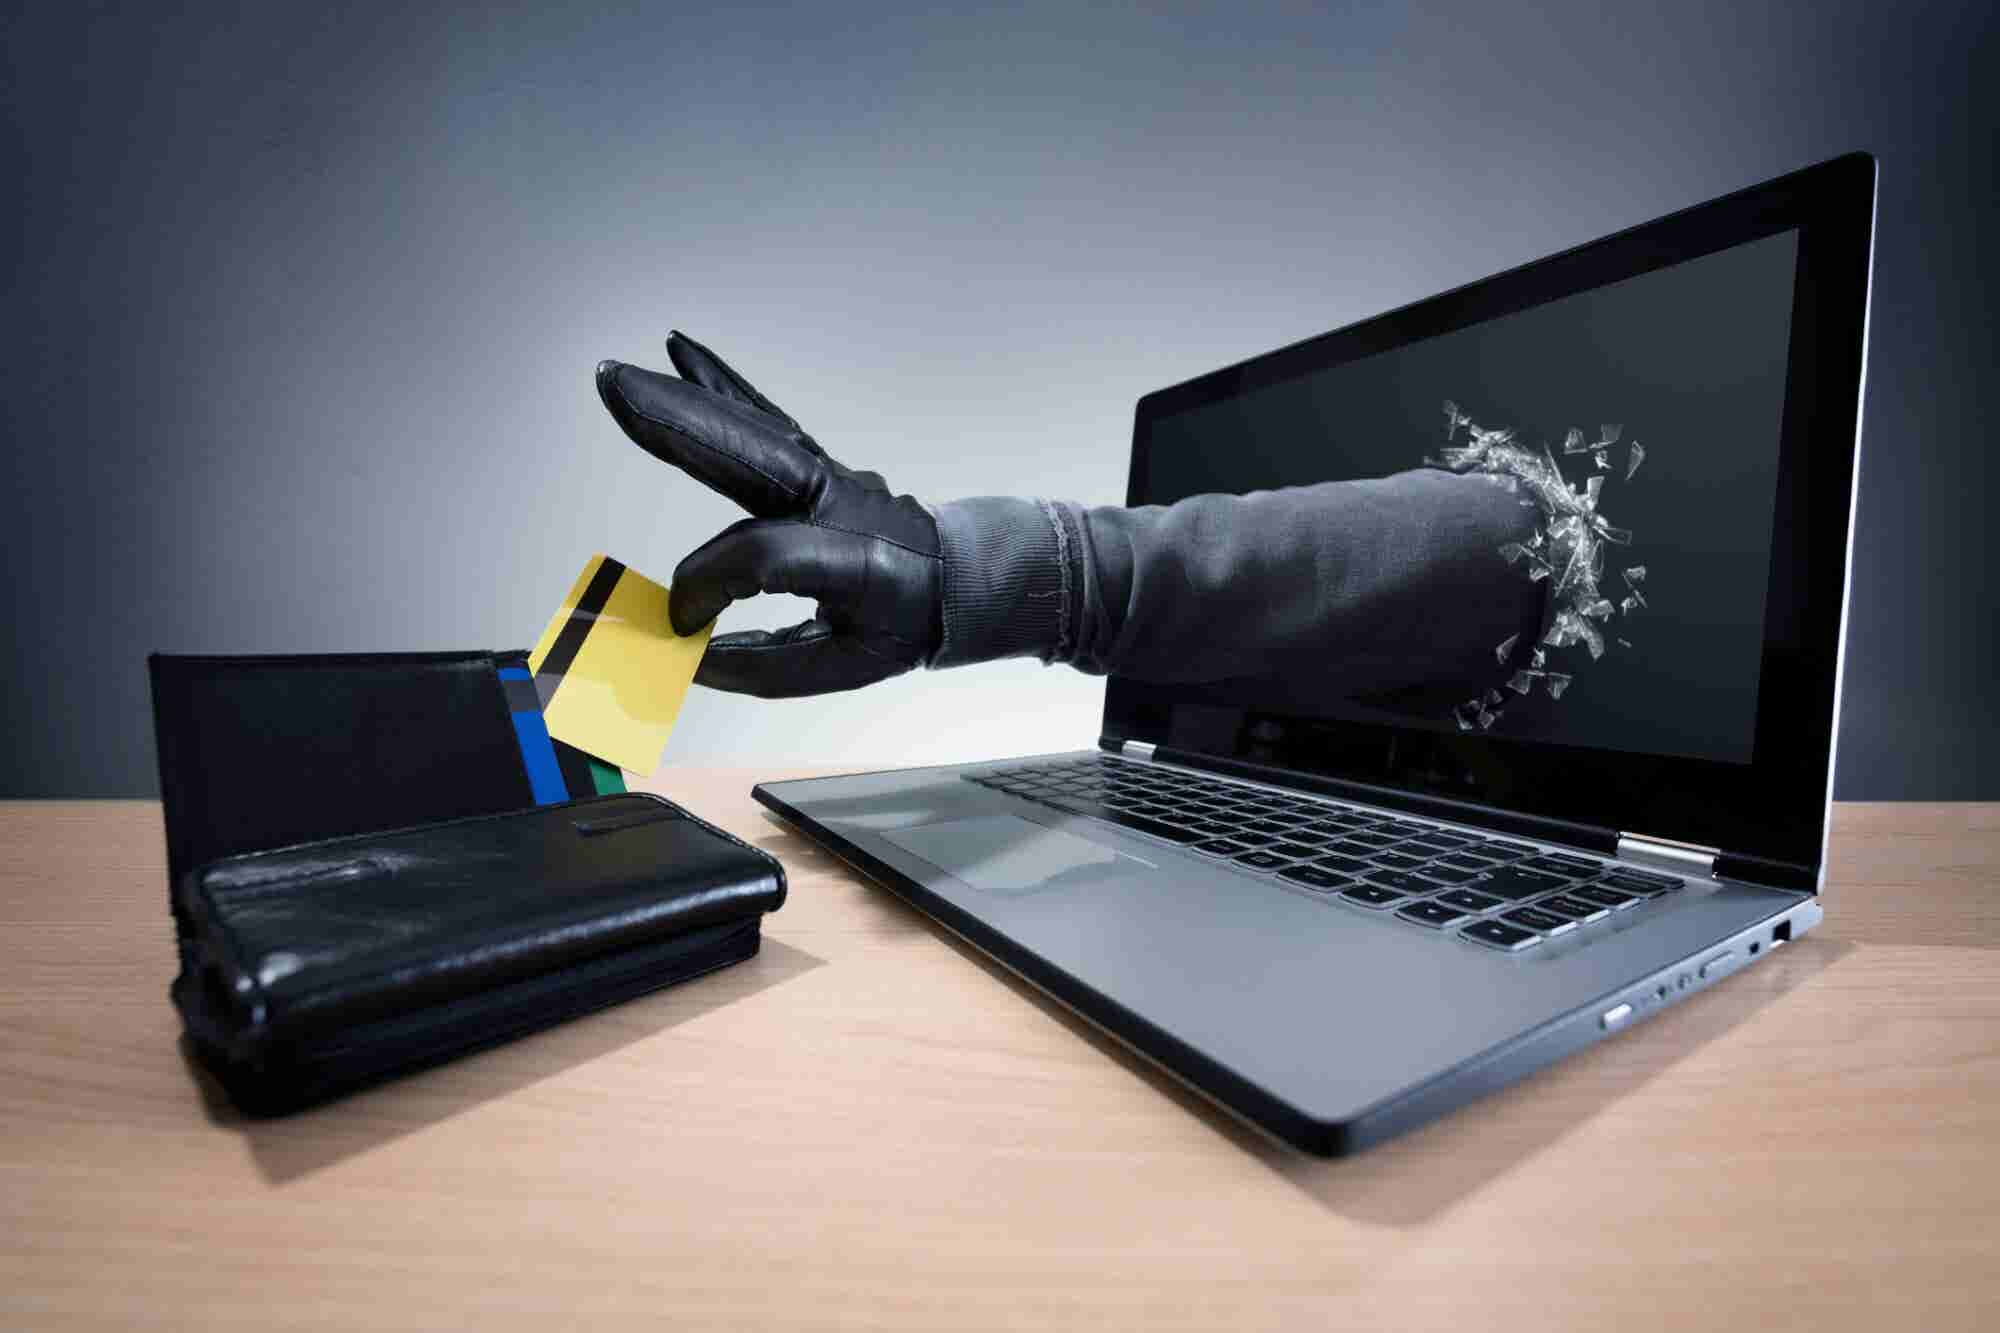 Unhappy Holidays! Scammers May Be Cleaning Out Your Online Customers' Wallets.